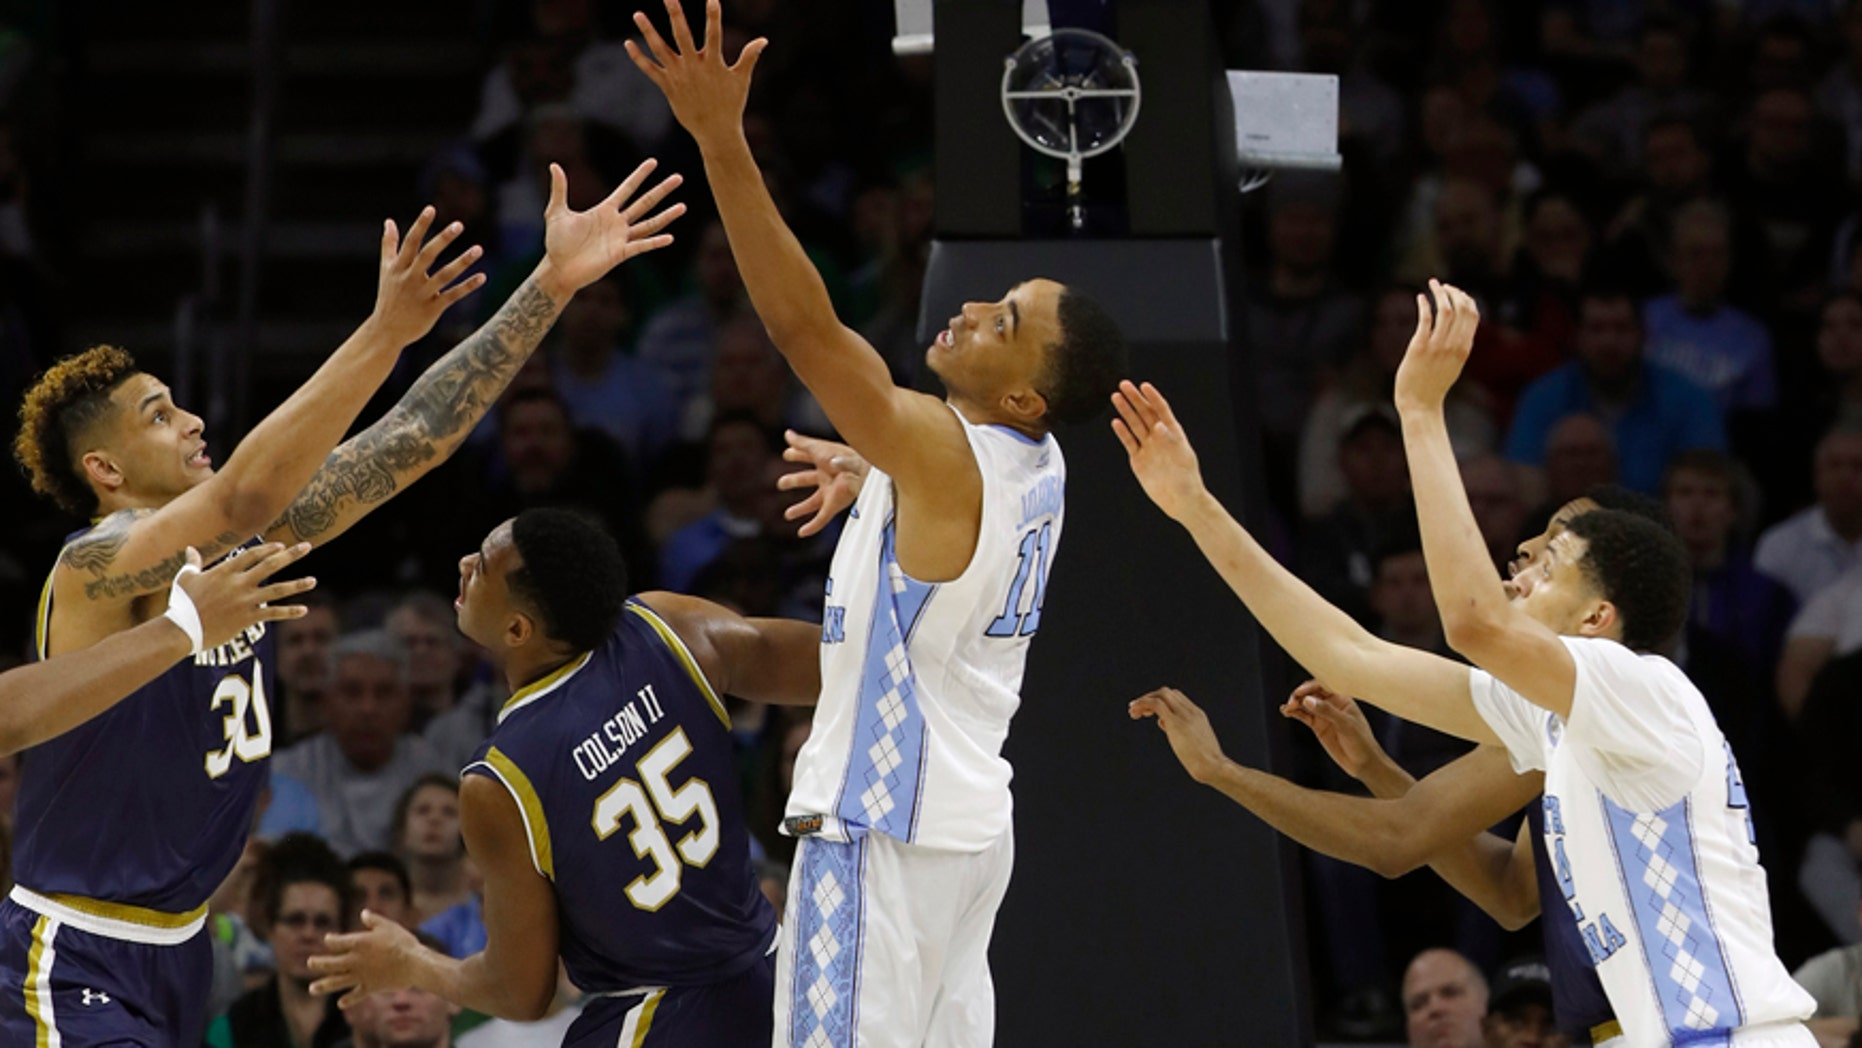 March 27, 2016: Notre Dame's Zach Auguste, far left, Bonzie Colson and North Carolina's Brice Johnson and Justin Jackson chase a rebound during the second half of the East Regional final in the men's NCAA basketball tournament in Philadelphia.